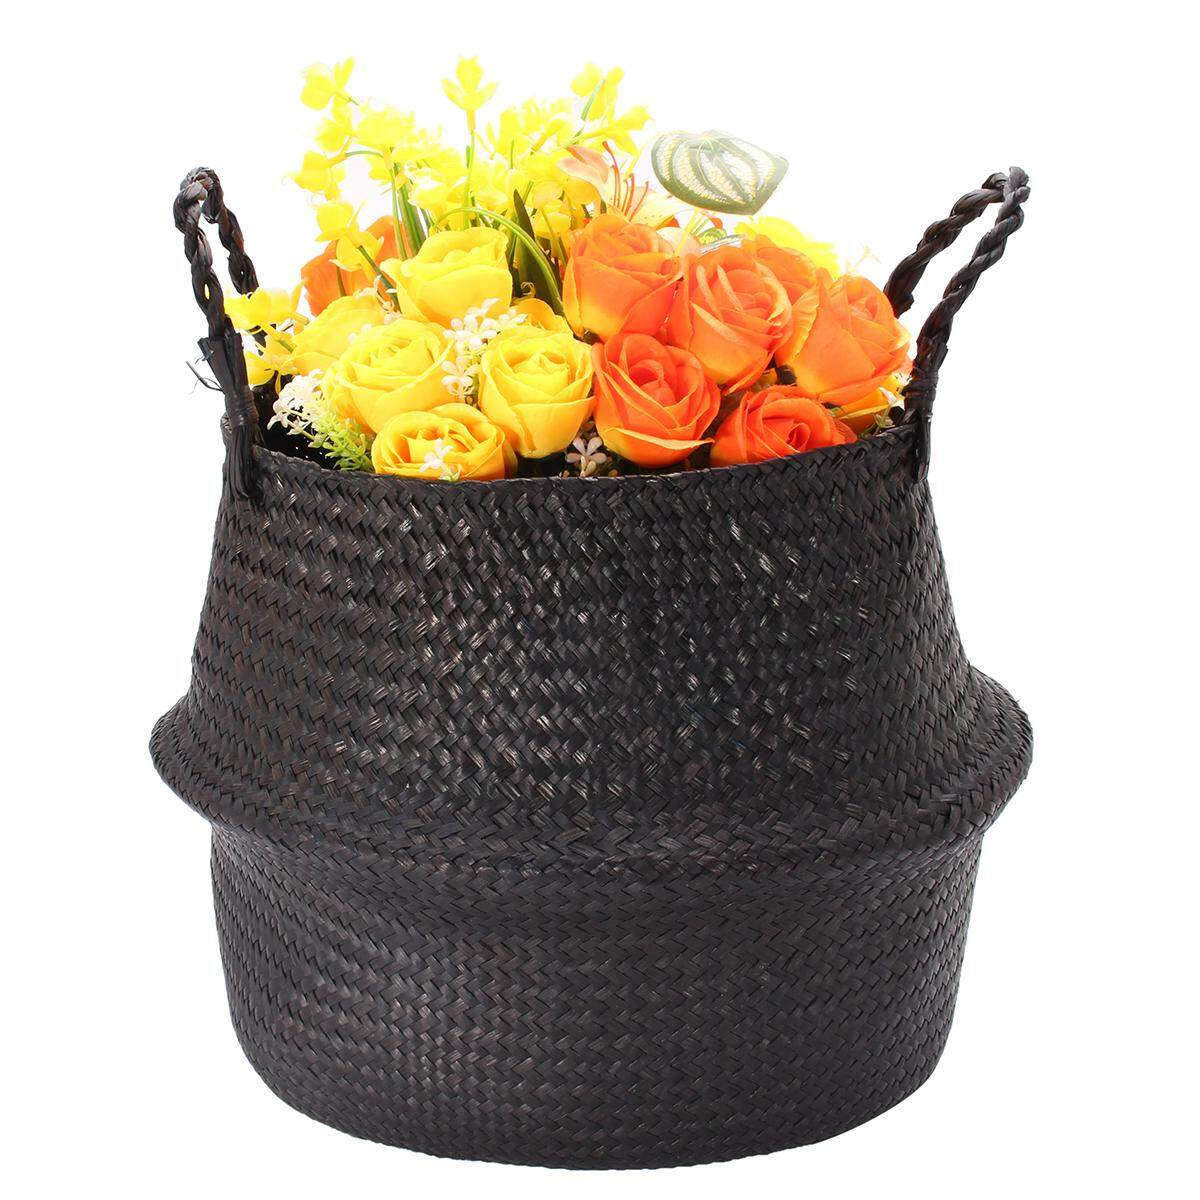 Black Seagrass Belly Basket Storage Holder Plant Pot Bag Home Decoration 38X36CM